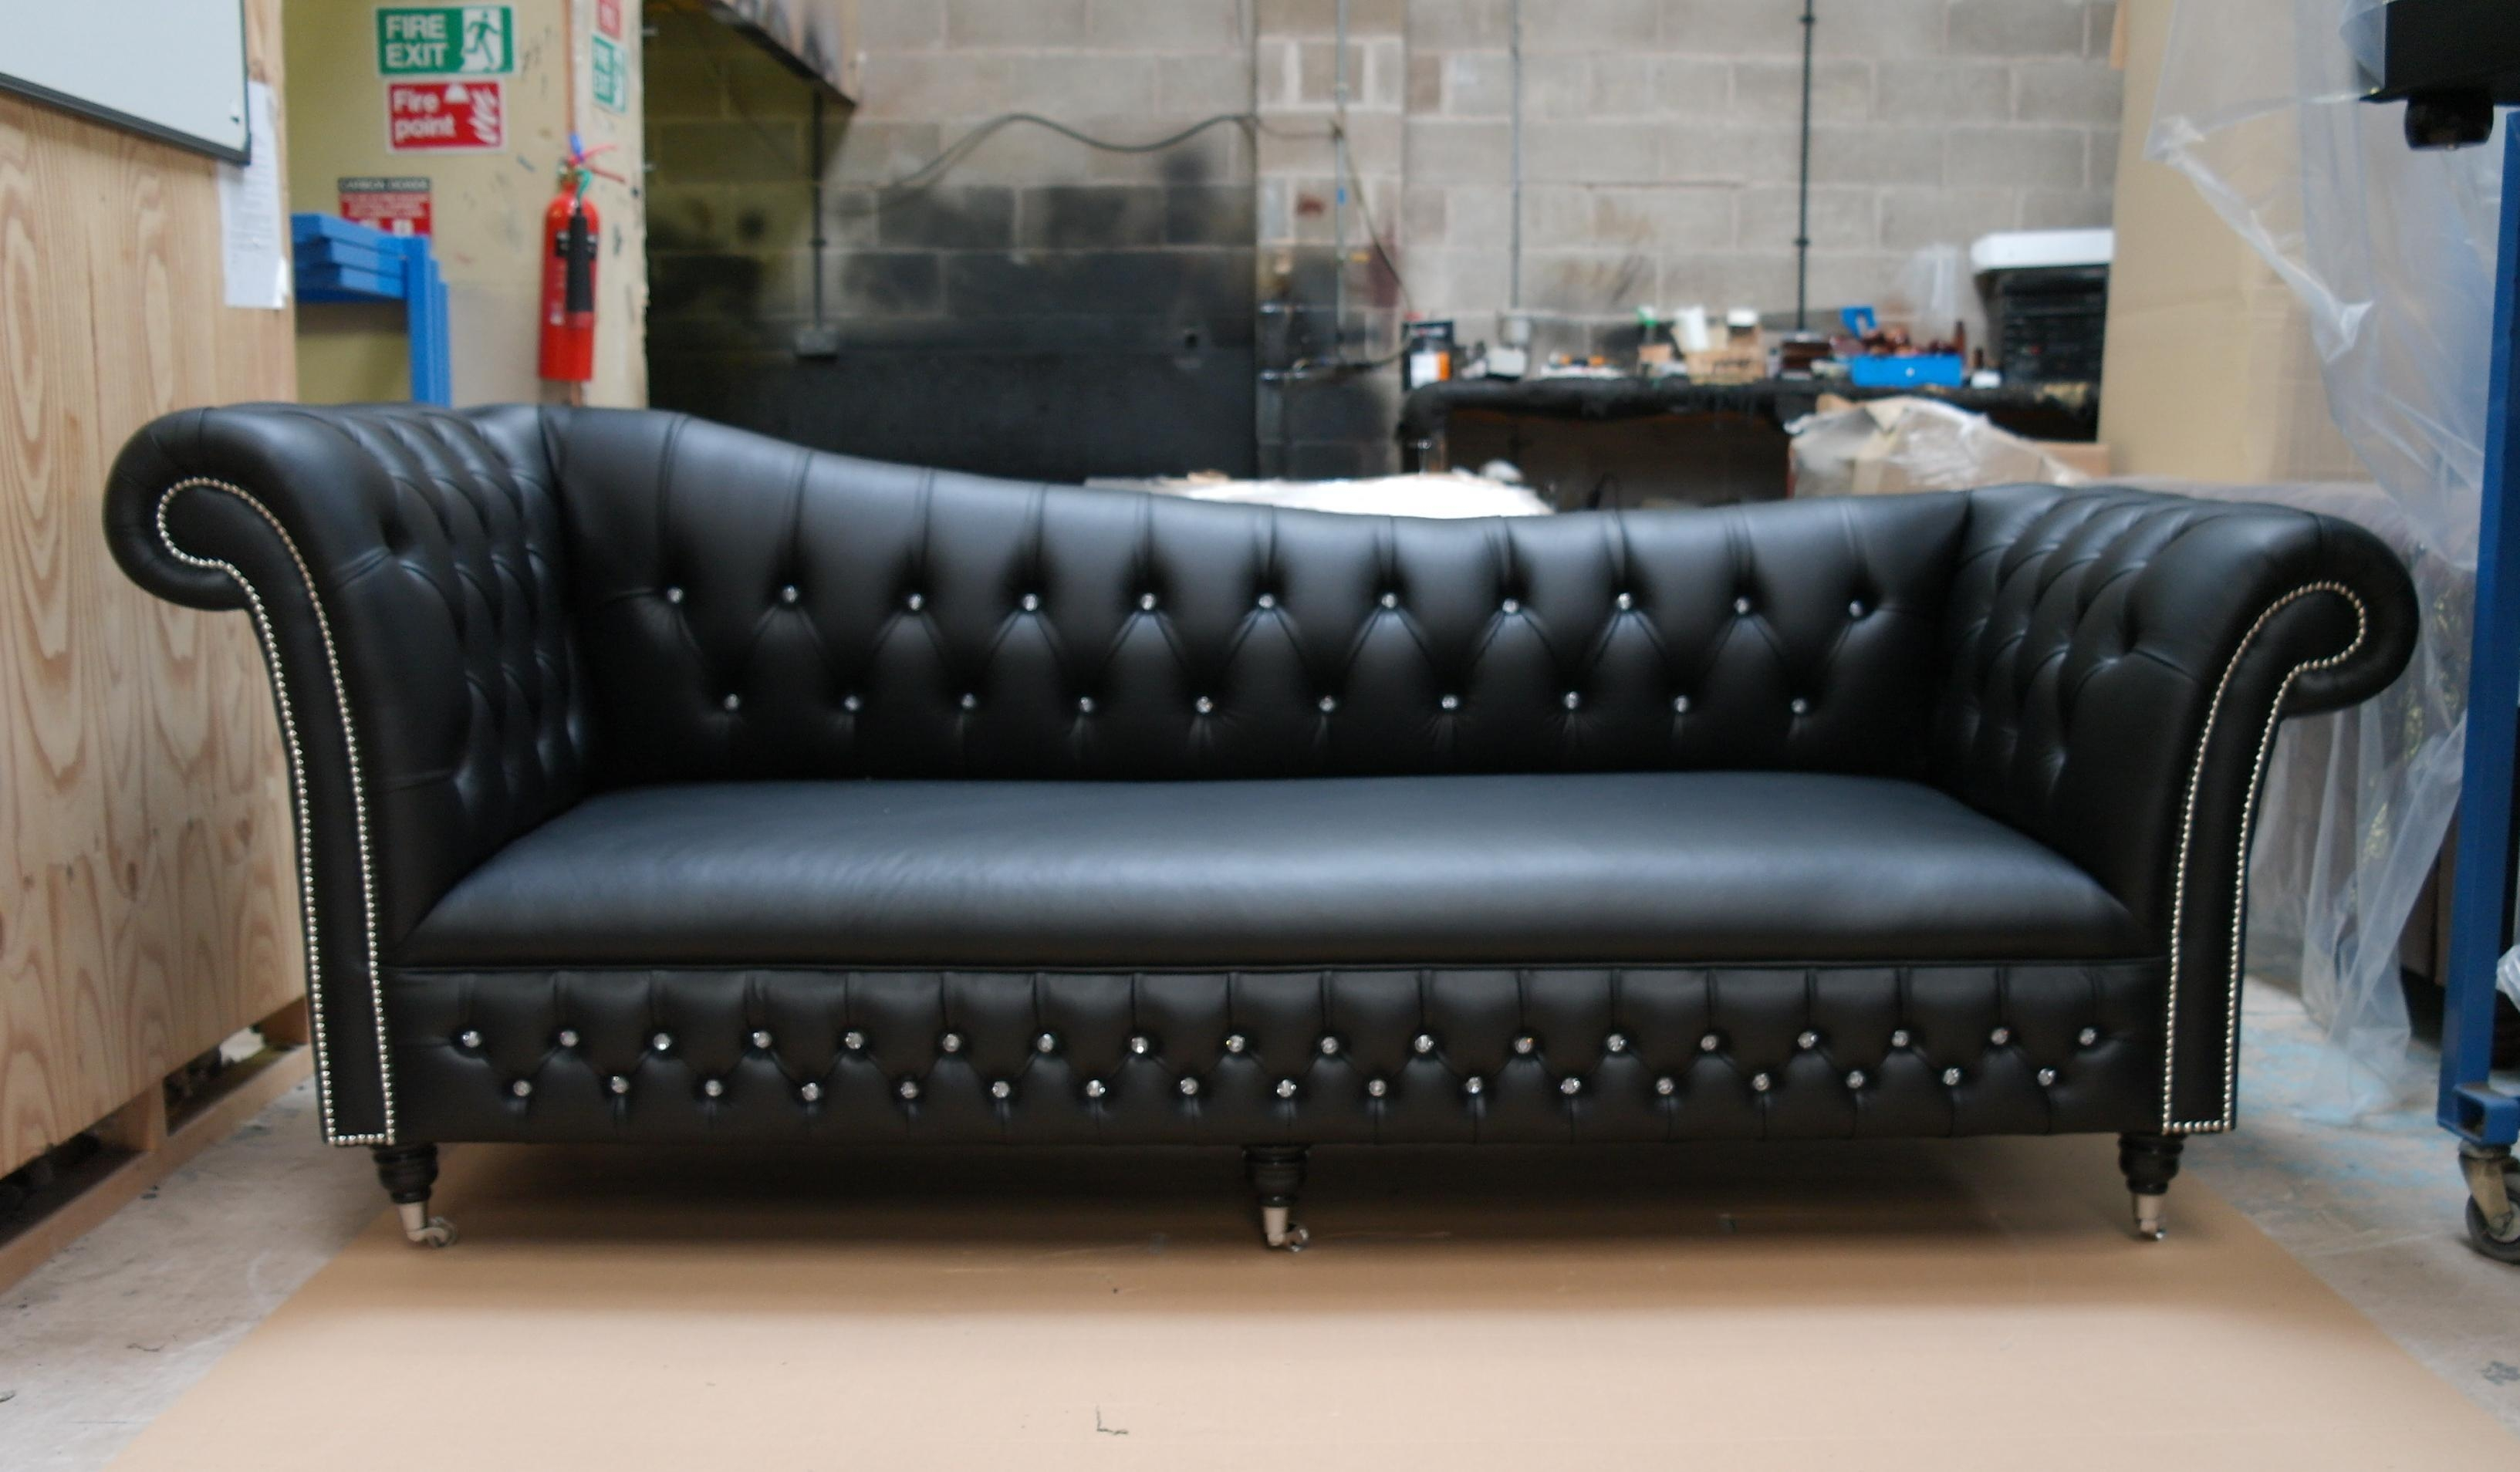 Storage Carnegie Leather Chesterfield Sofa Leather Small Intended For Small Chesterfield Sofas (View 10 of 20)